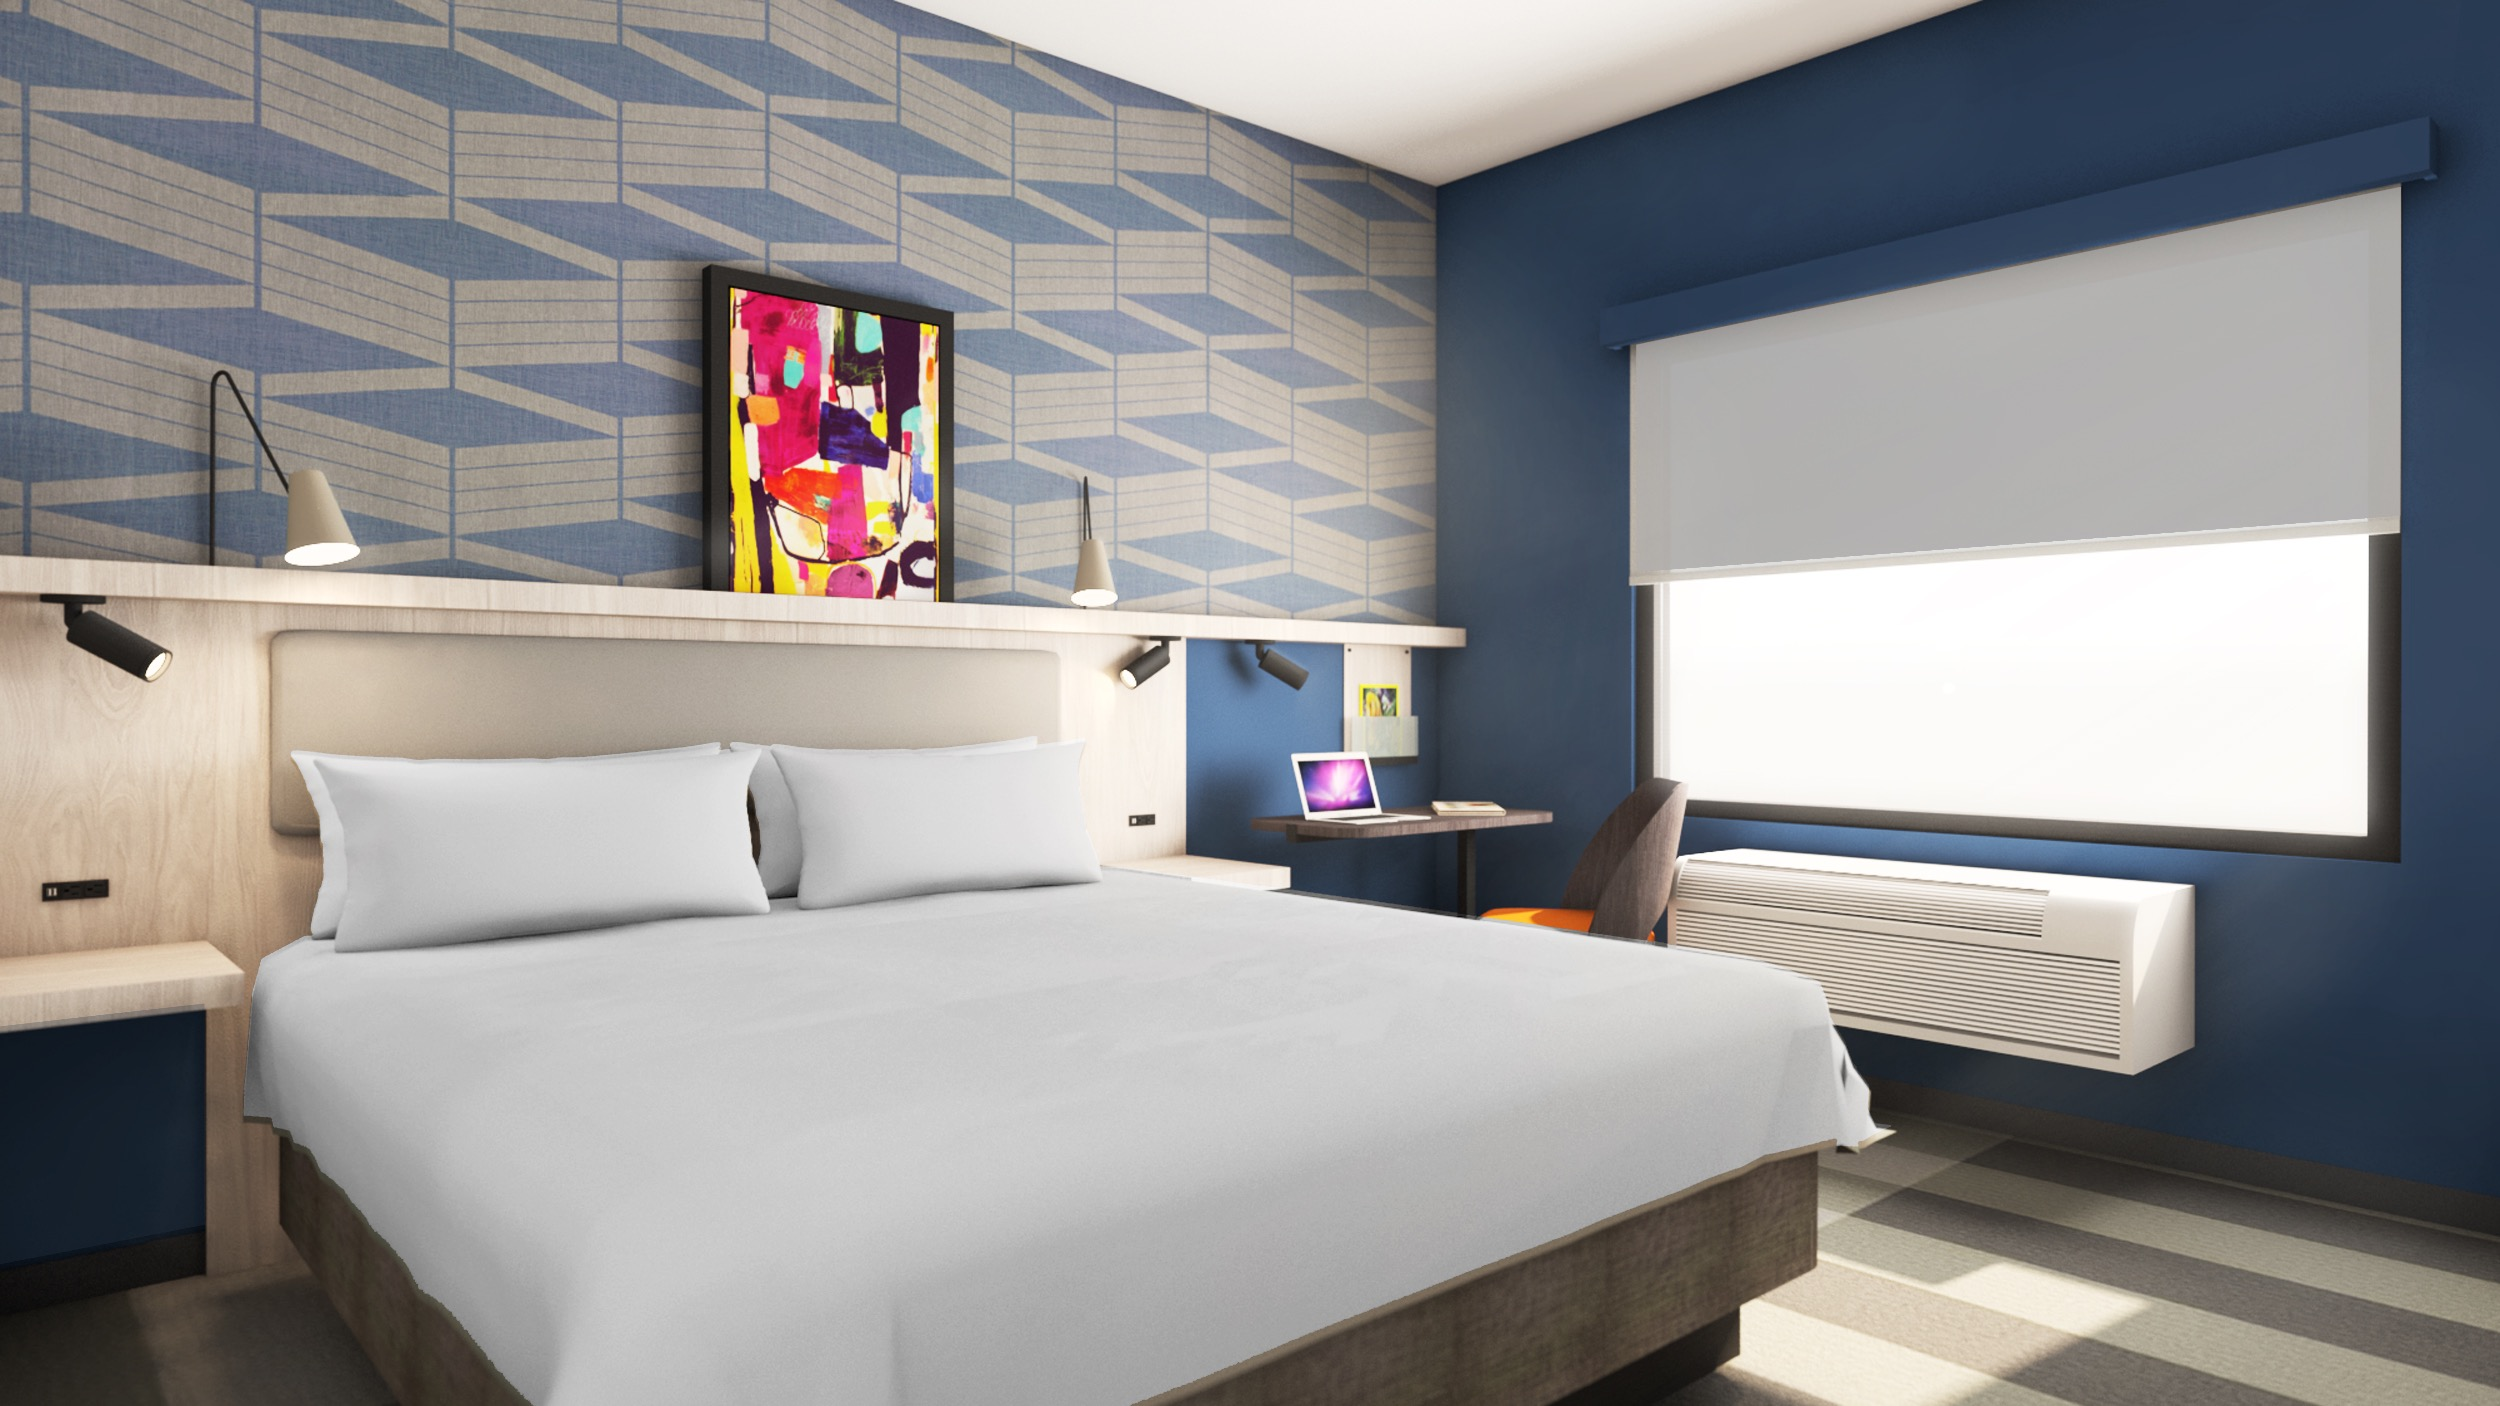 The new Park Inn design, targeted at the upper-midscale market, is meant to maximize space within a compact footprint.